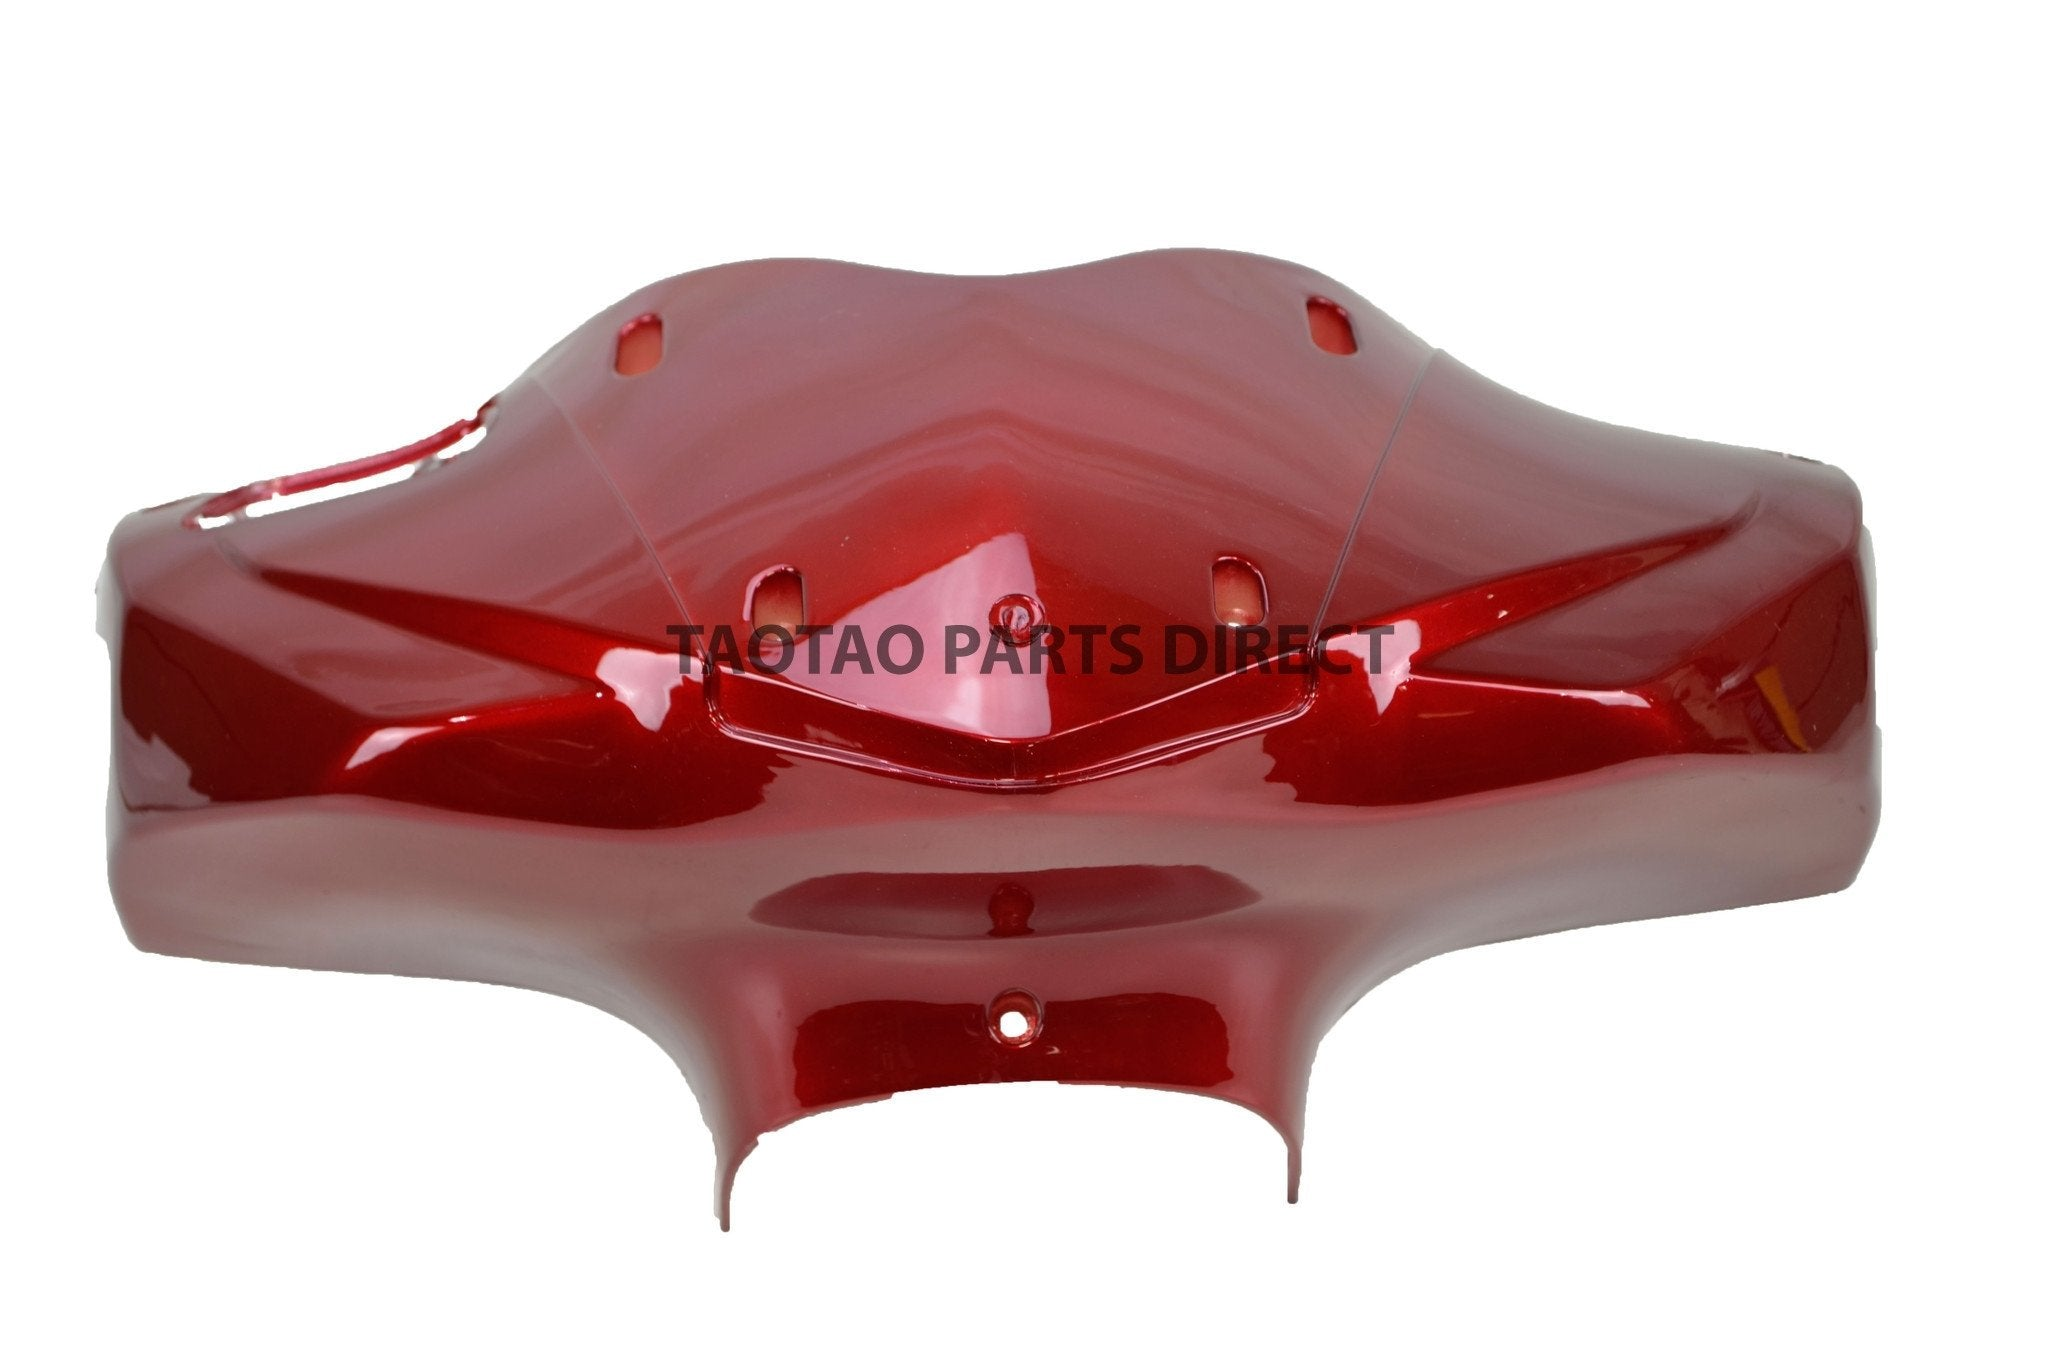 Scooter Parts - Evo 150 Handlebar Cover